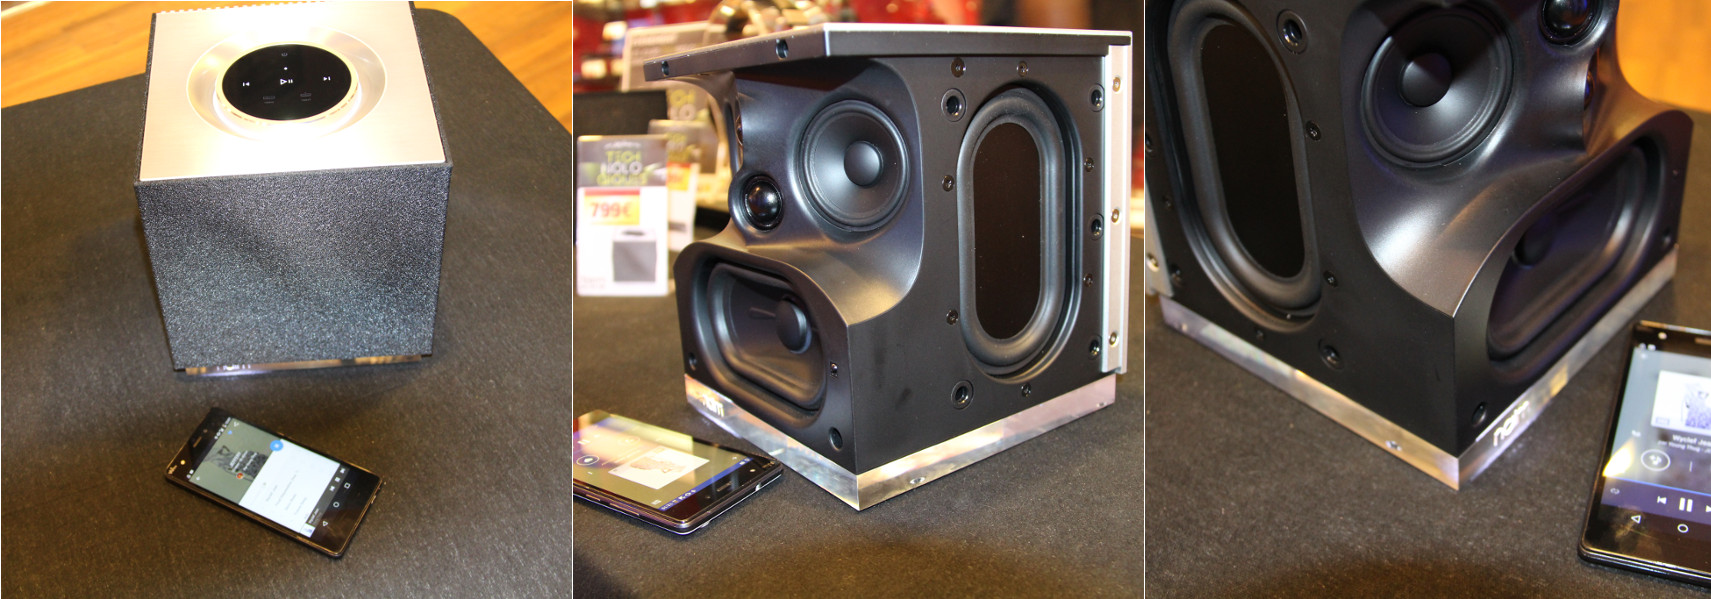 Test Espresso Naim Muso Qb Petit Mais Tres Costaud Blog Cobra # Emplacement Enceinte Home Cinema